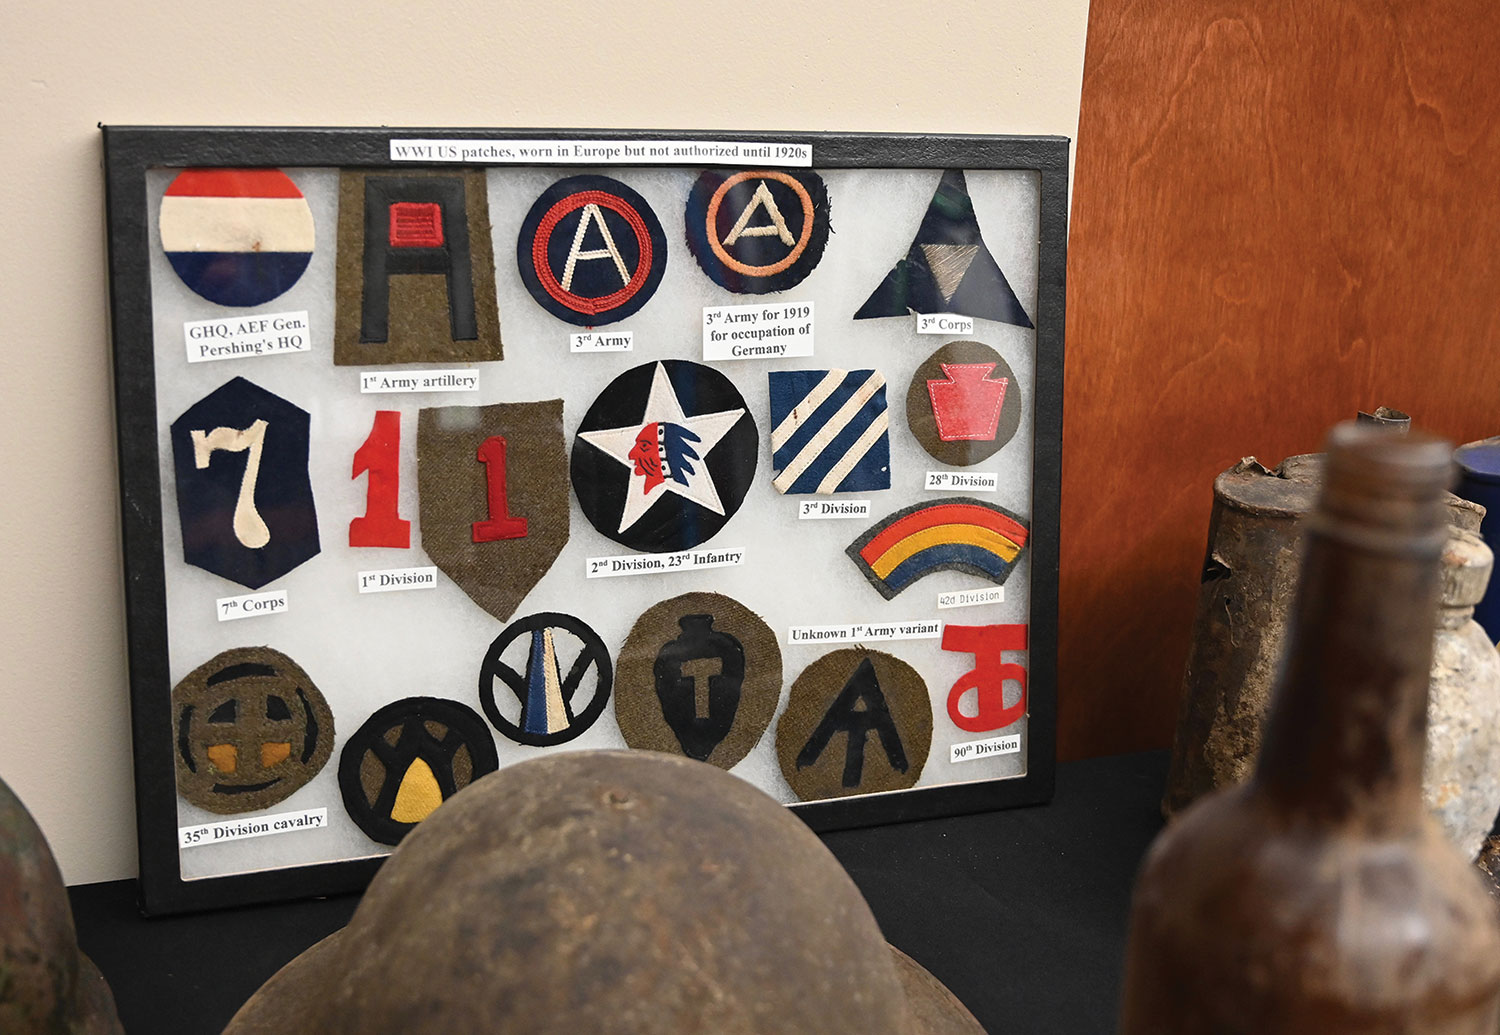 photo of WWI uniform patch collection in the CGSC Foundation gift shop